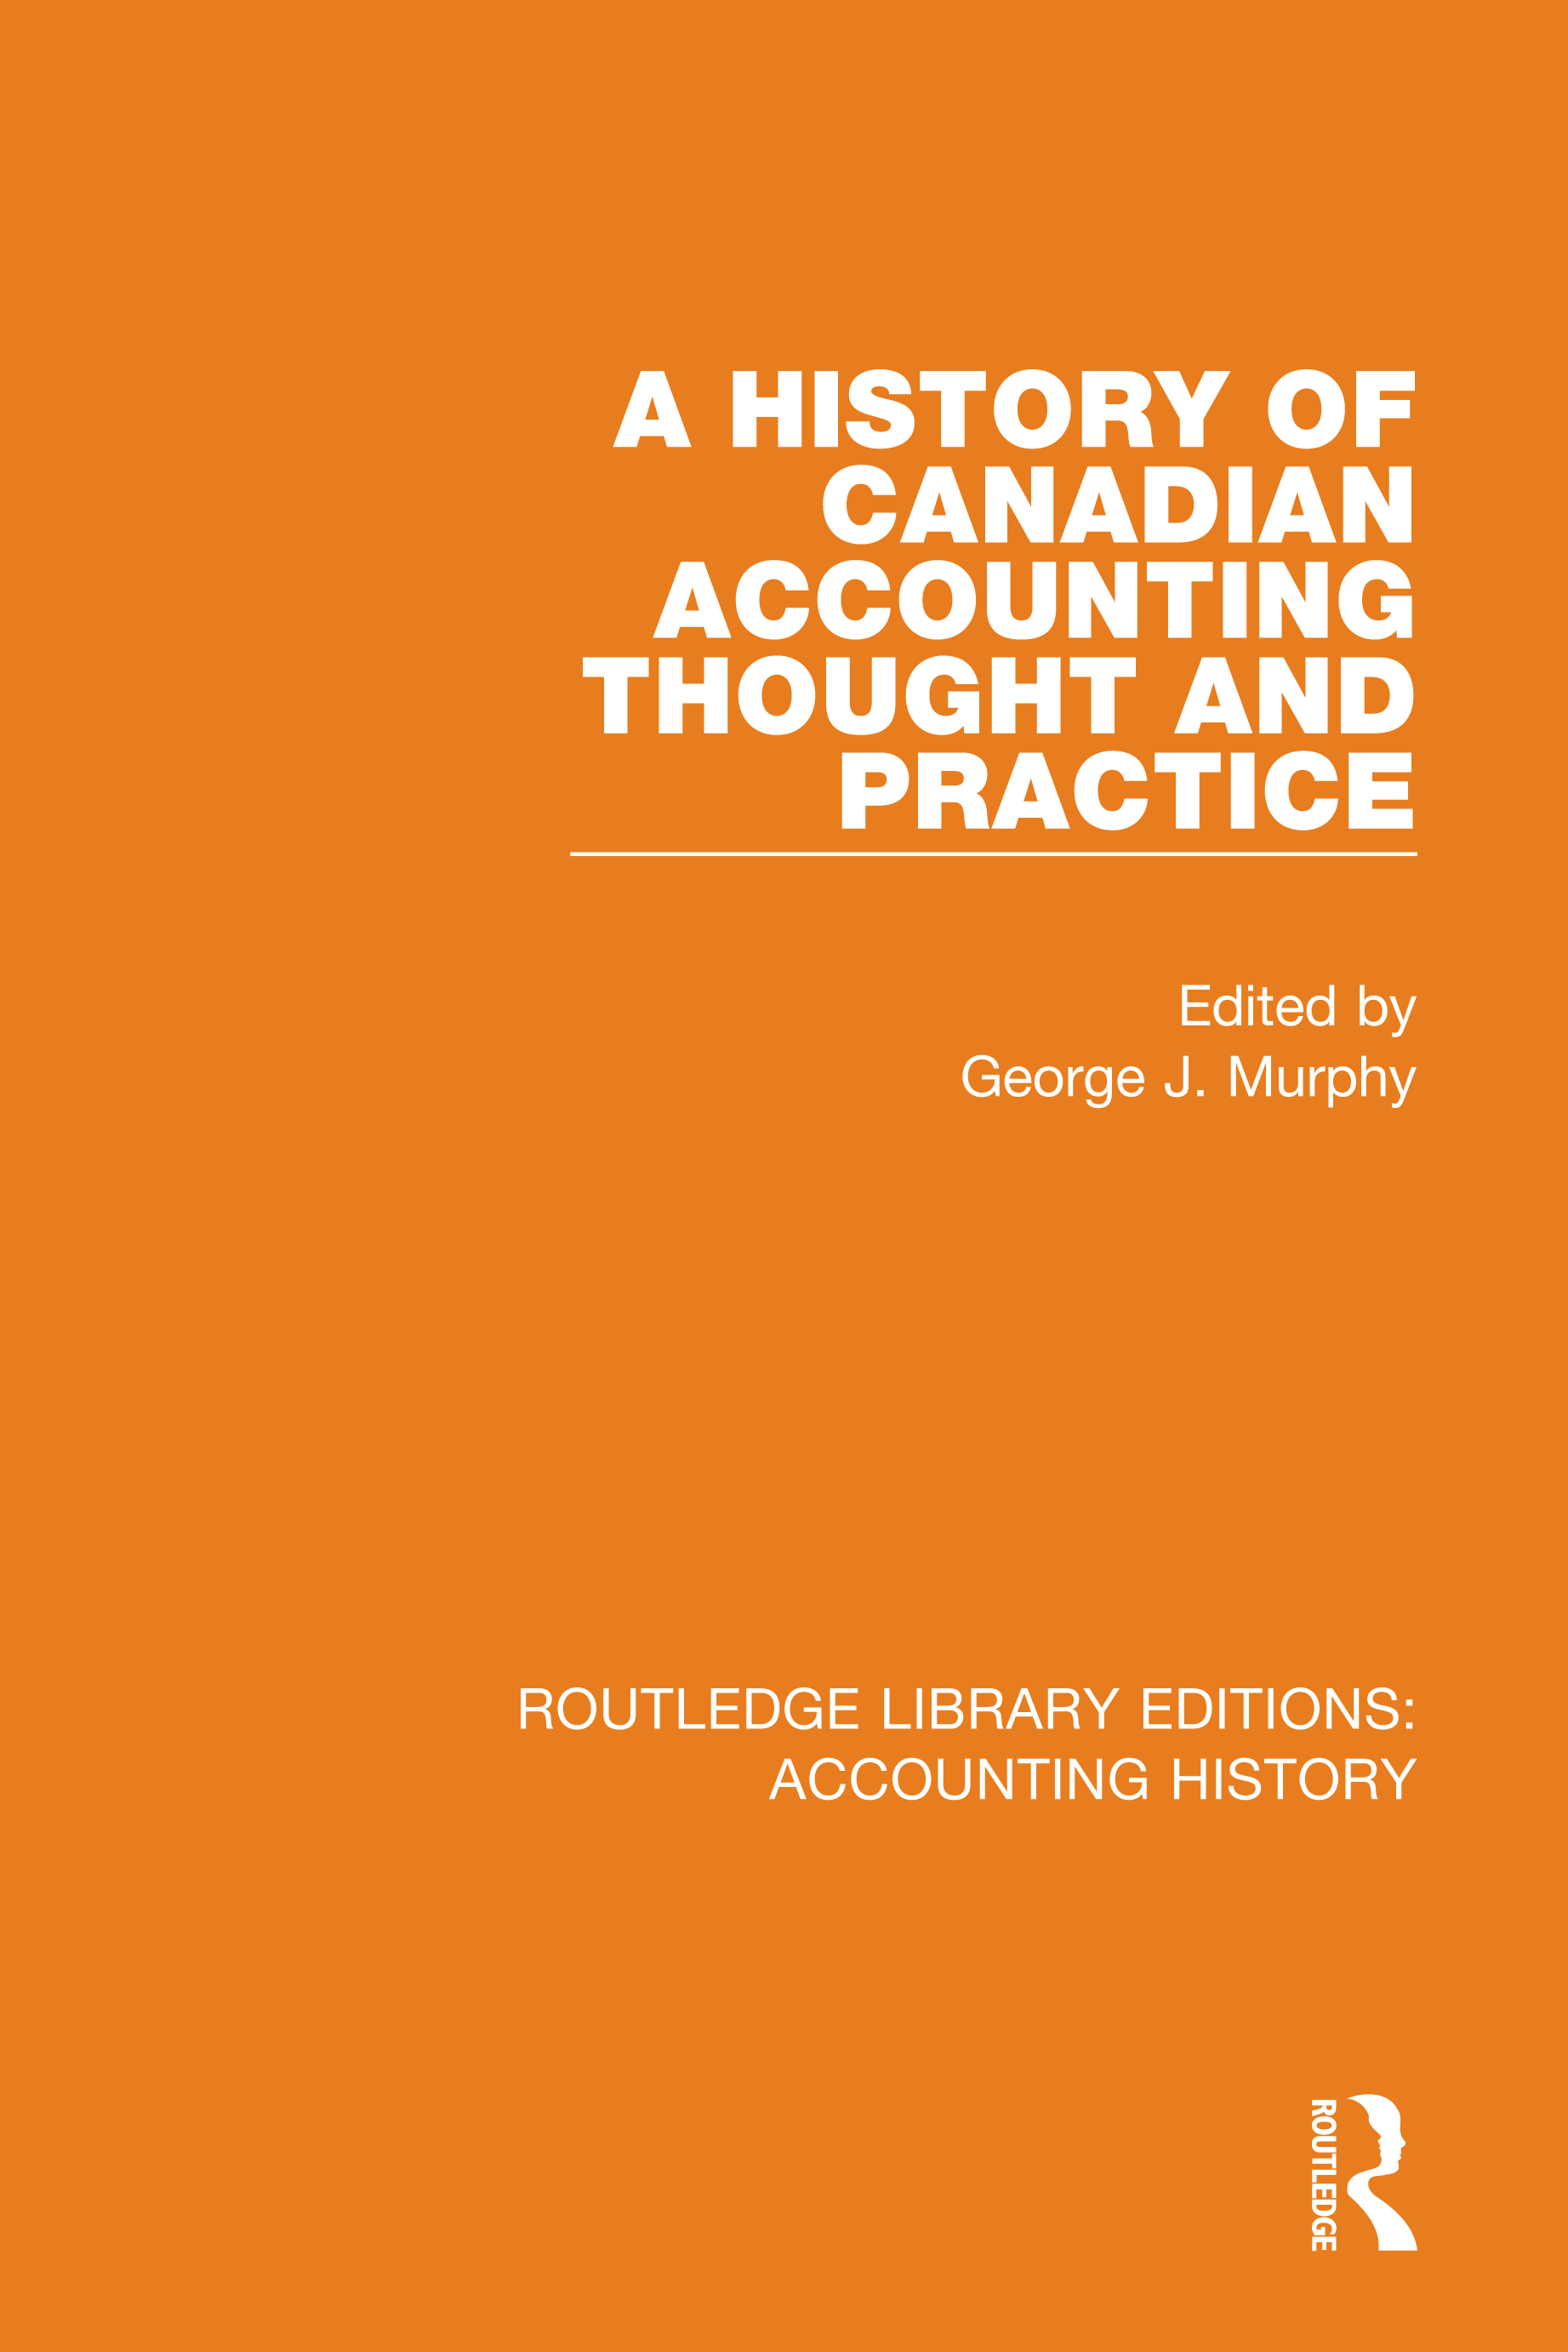 A History of Canadian Accounting Thought and Practice